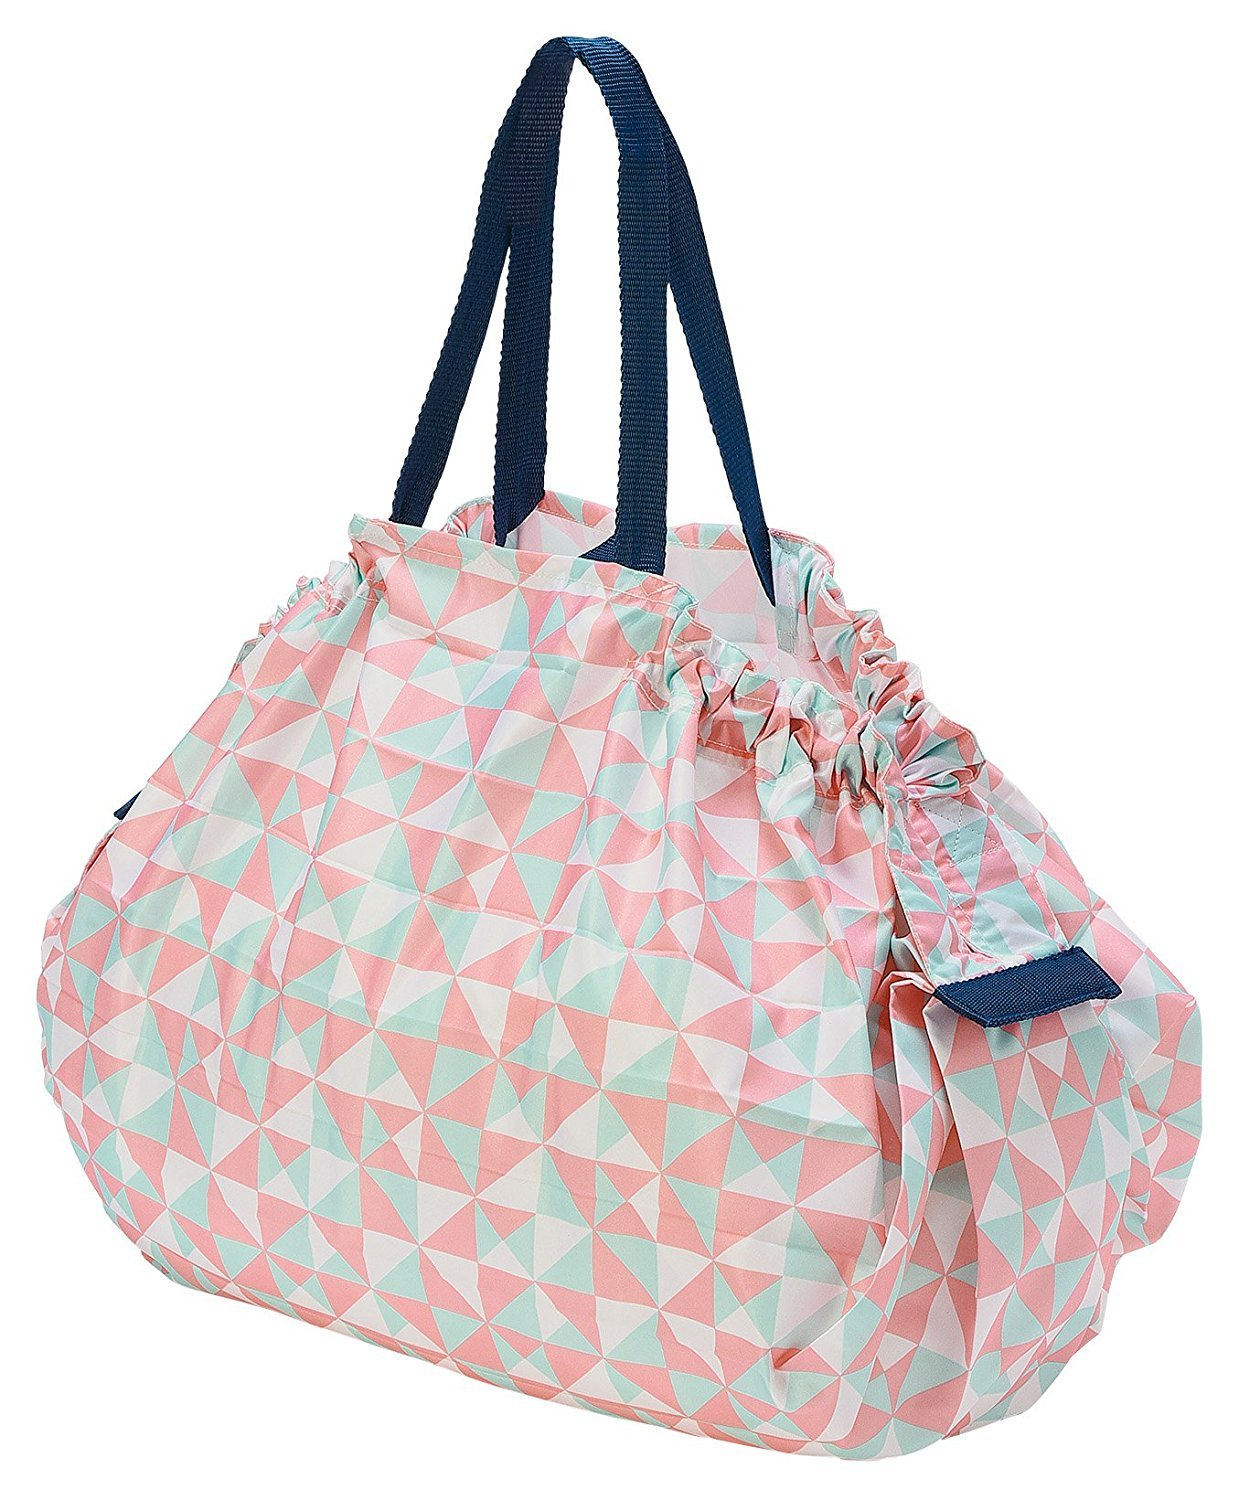 a92c0014e762 Amazon.com  MARNA Reusable Shopping Grocery Compact Foldable Tote Bag L  (triangle)  Kitchen   Dining